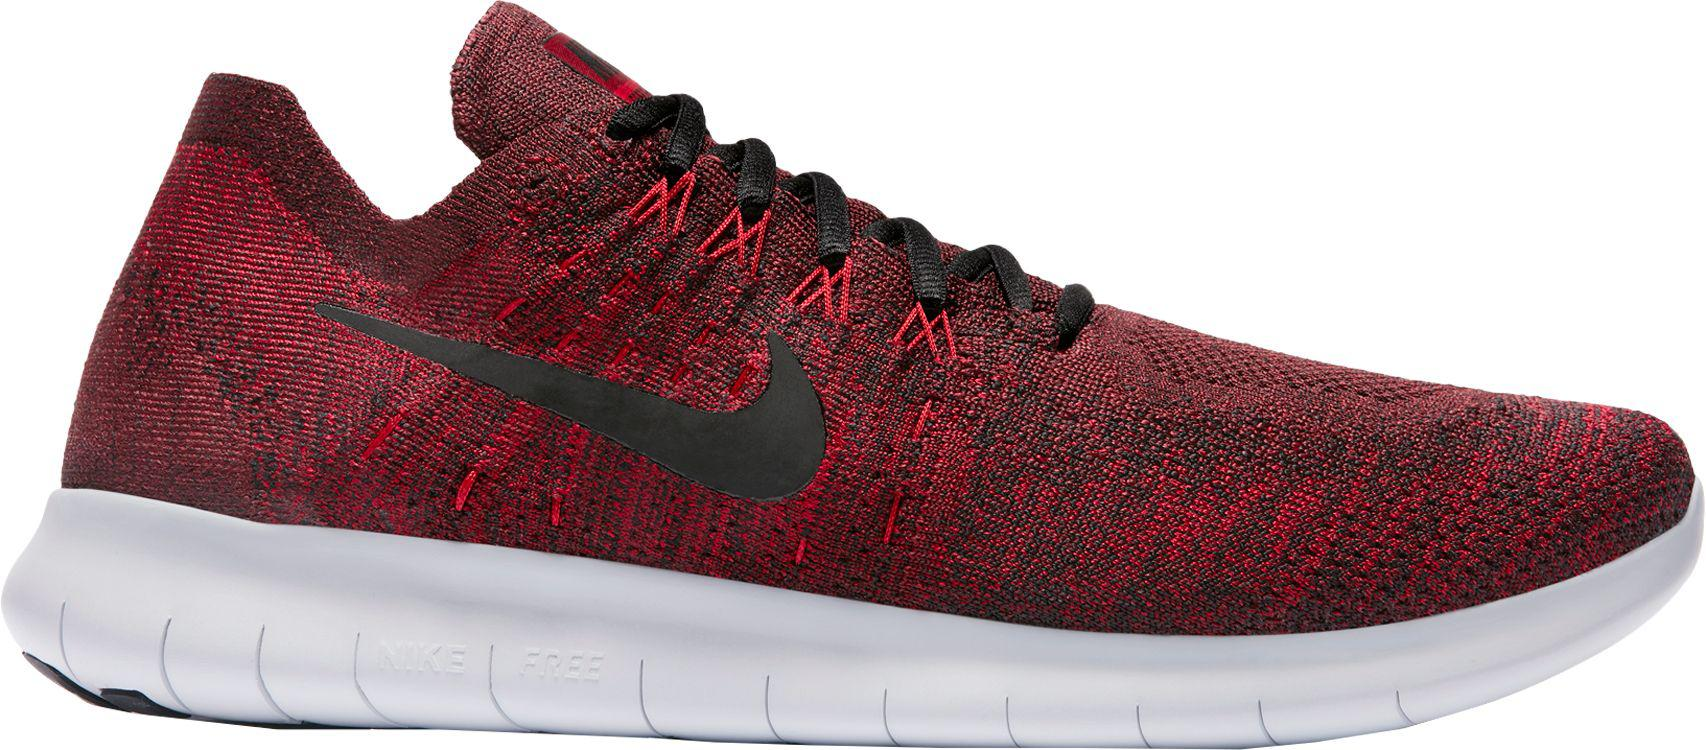 adec22ec3c30 Gallery. Previously sold at  Dick s Sporting Goods · Men s Nike Flyknit  Men s Nike Free